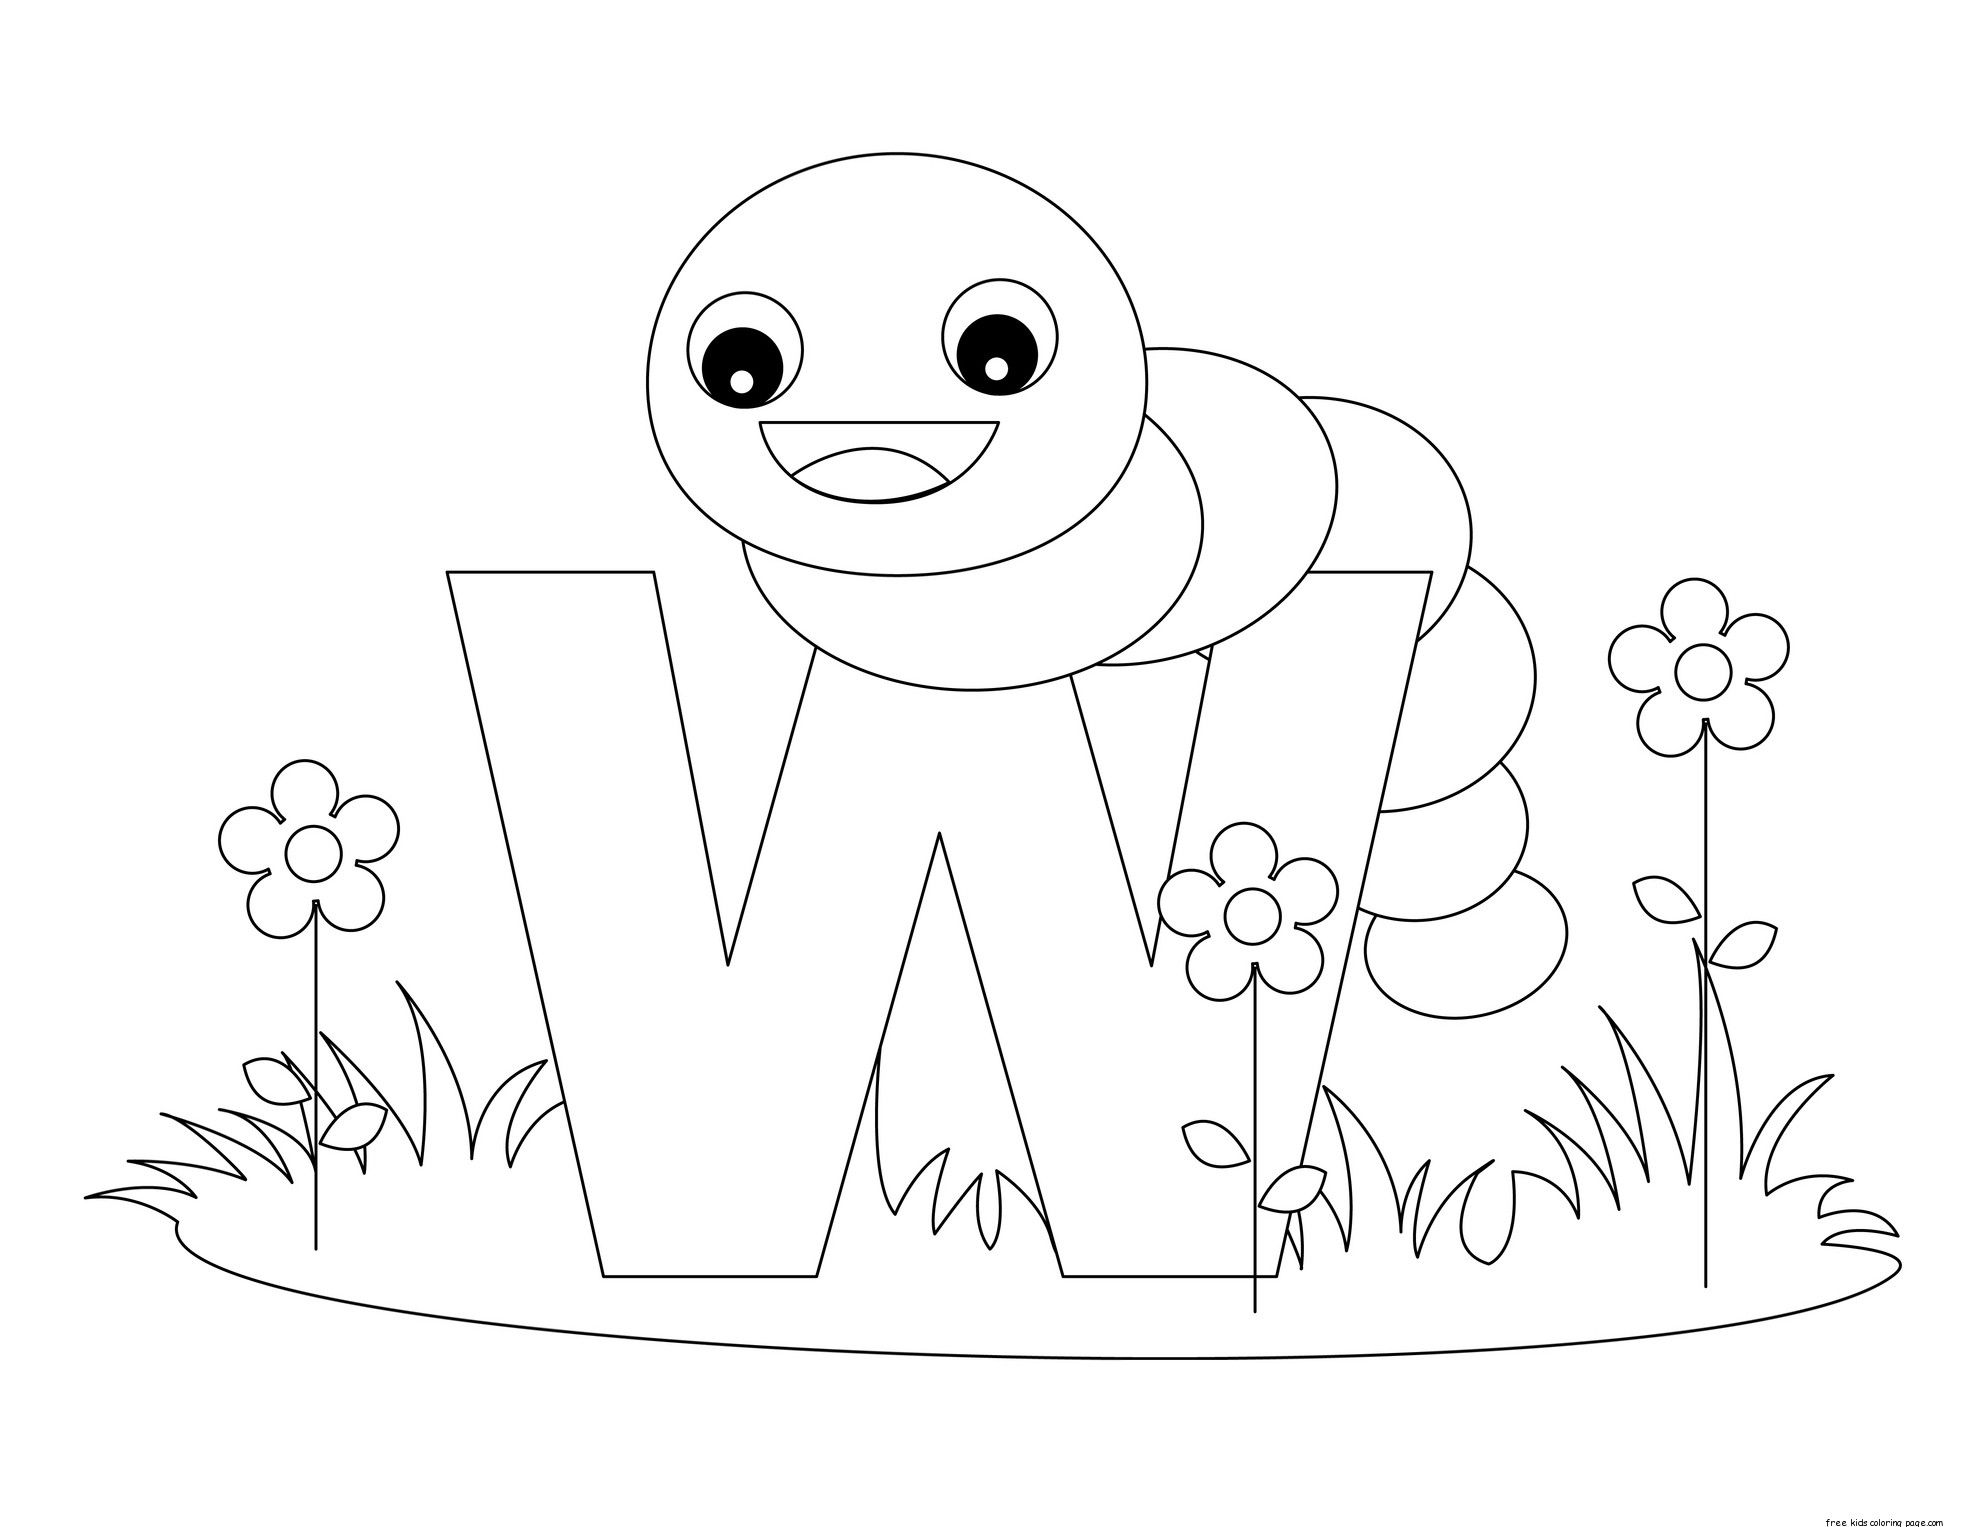 Printable-Animal-Alphabet-Letter-W-is-for-Worm.jpeg (1963×1527 ...